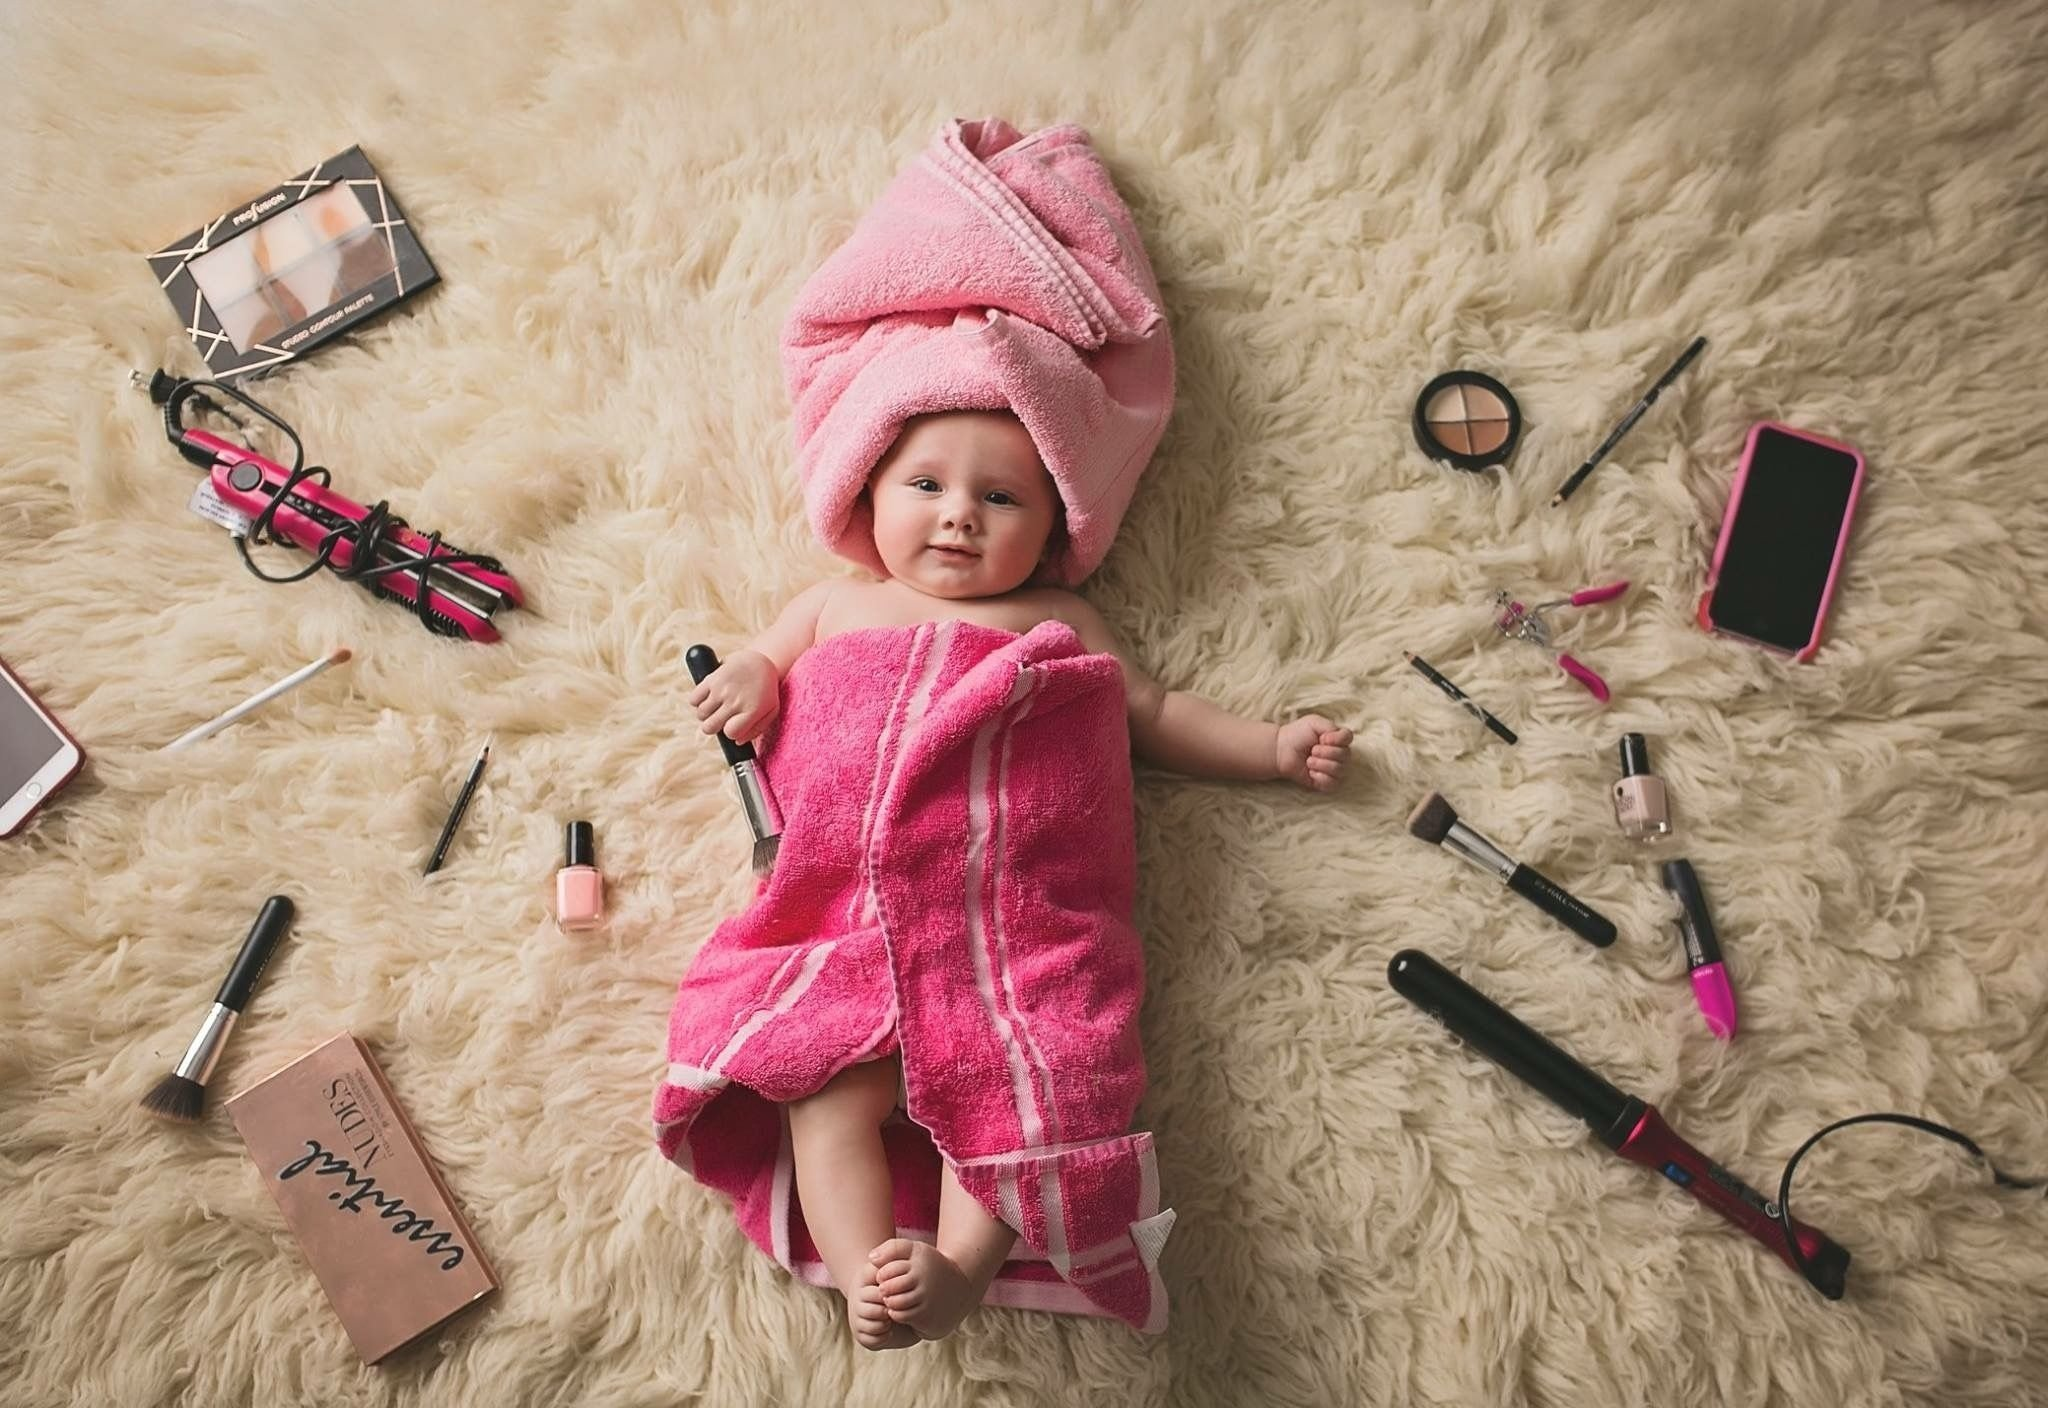 10 Attractive 6 Month Photo Shoot Ideas Girl 4 month baby girl pink make up towels photography ideas baby girl